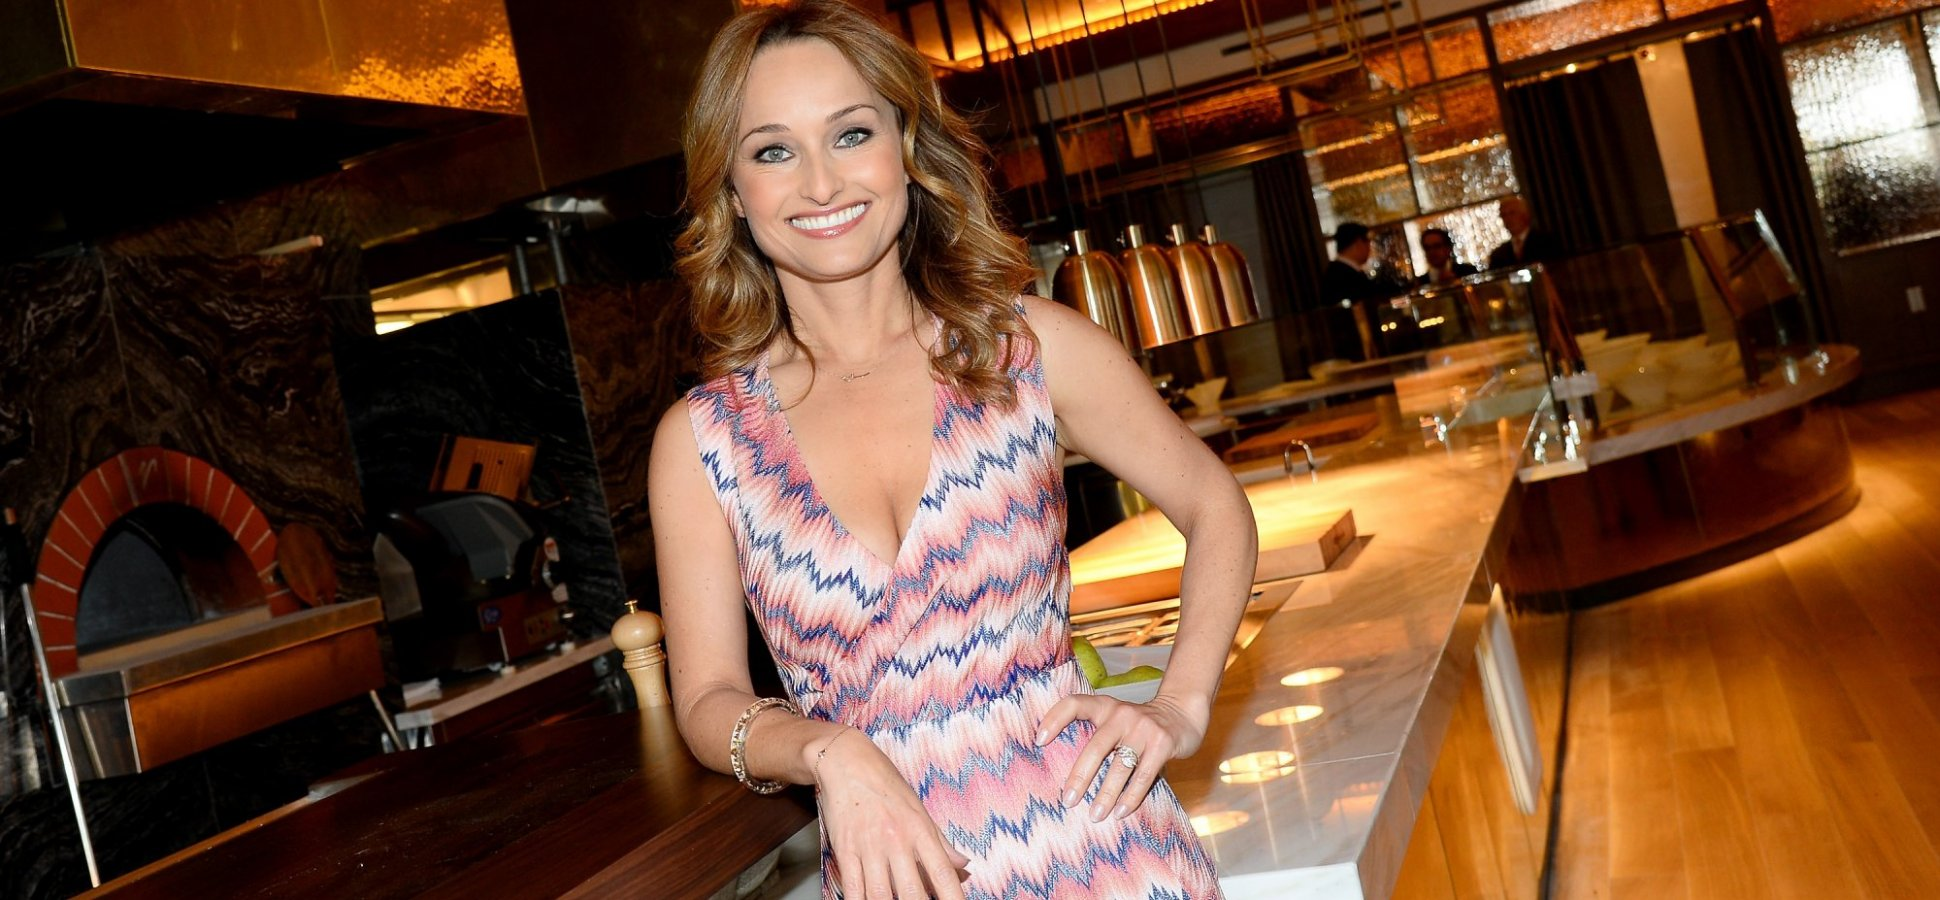 Celebrity Giada Sgarbossa naked (76 foto and video), Ass, Leaked, Boobs, butt 2015